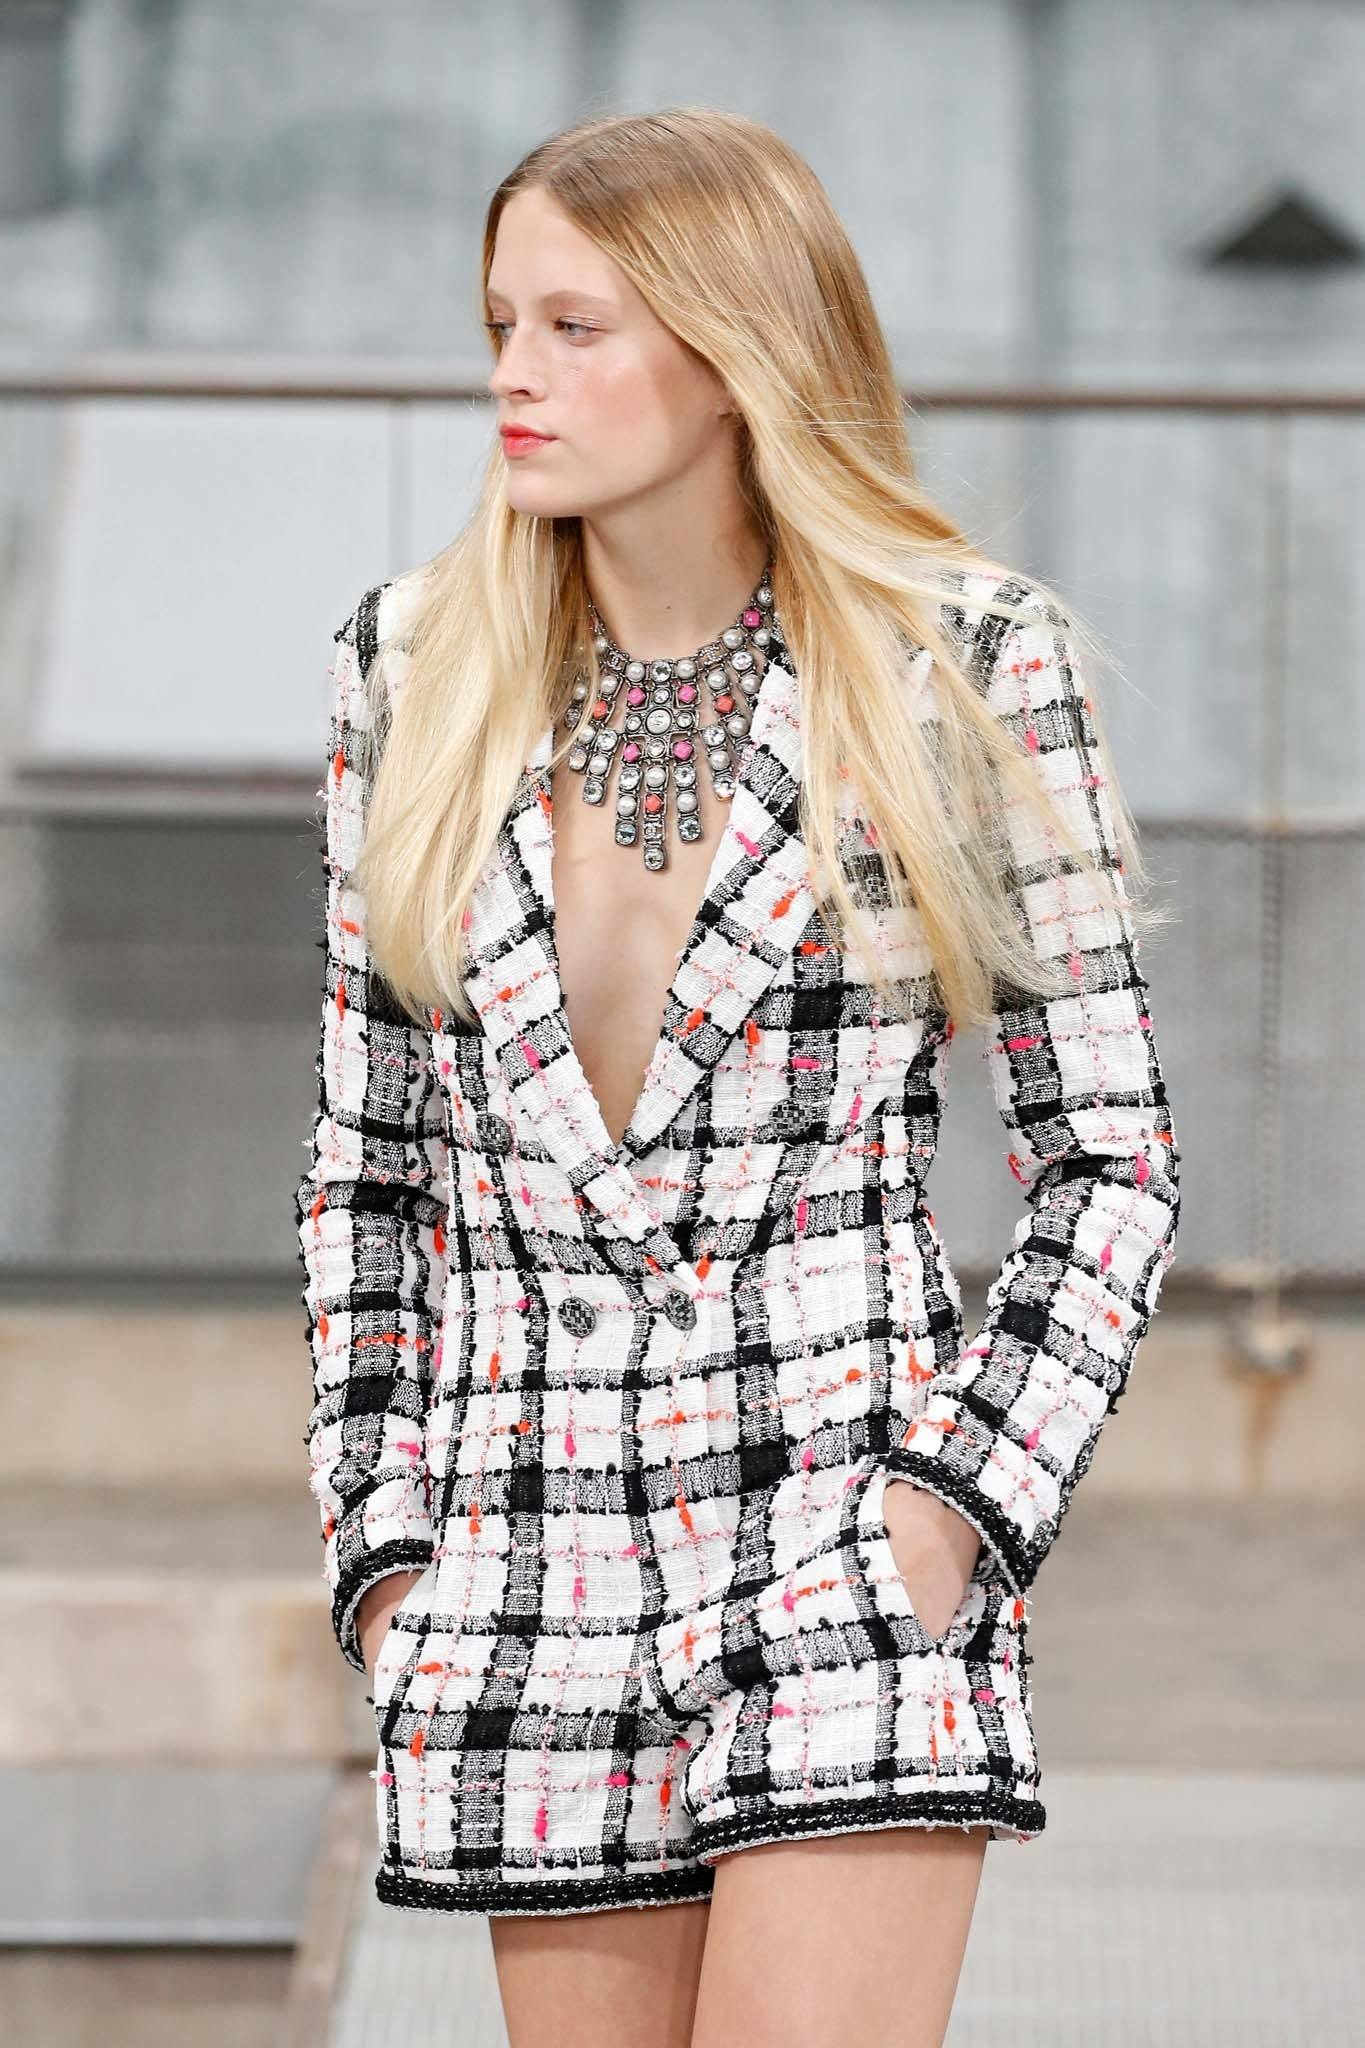 Caucasian woman with long blonde ombre hair wearing a plaid long-sleeved outfit on the runway